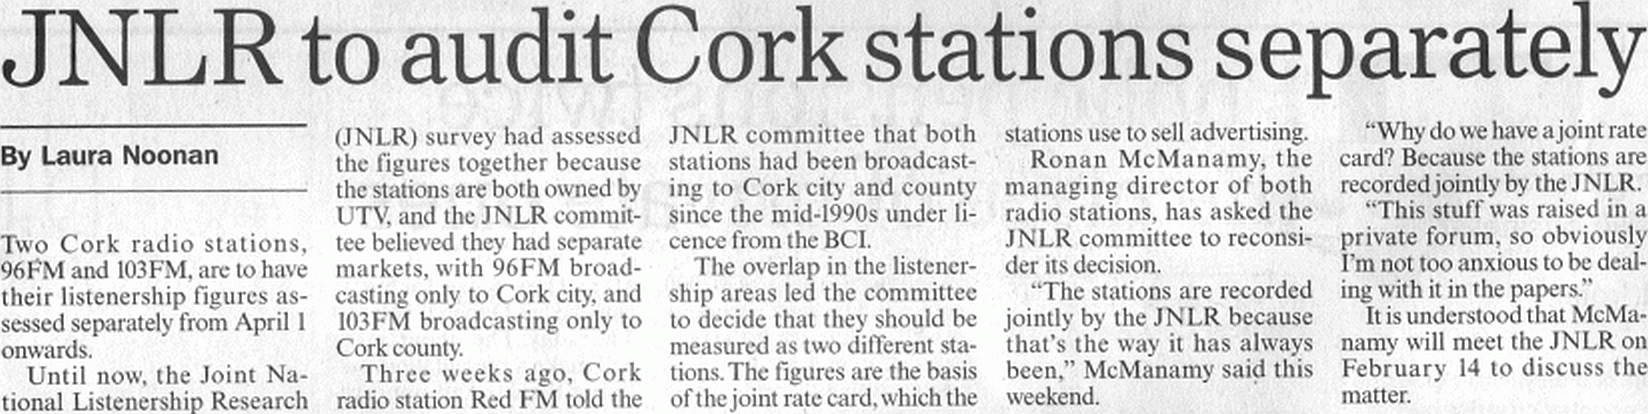 Two of Cork's radio stations, 96FM and 103FM, are to have their JNLR figures audited separately in future after local rival Red FM alerted advertising agancies to the fact that the stations cover the same catchment area. 96FM and 103FM, both owned by UTV, have had their listenership figures presented as if they were a single entity due to the fact that originally they actually broadcast to separate areas - 96FM to Cork city and 103FM to Cork county. However that situation changed in the mid-'90s and both stations are now available over the whole of Cork. Advertising agencies are angry that they bought advertising time on both stations, believing them to cover two different areas. The new arrangement takes effect from April.